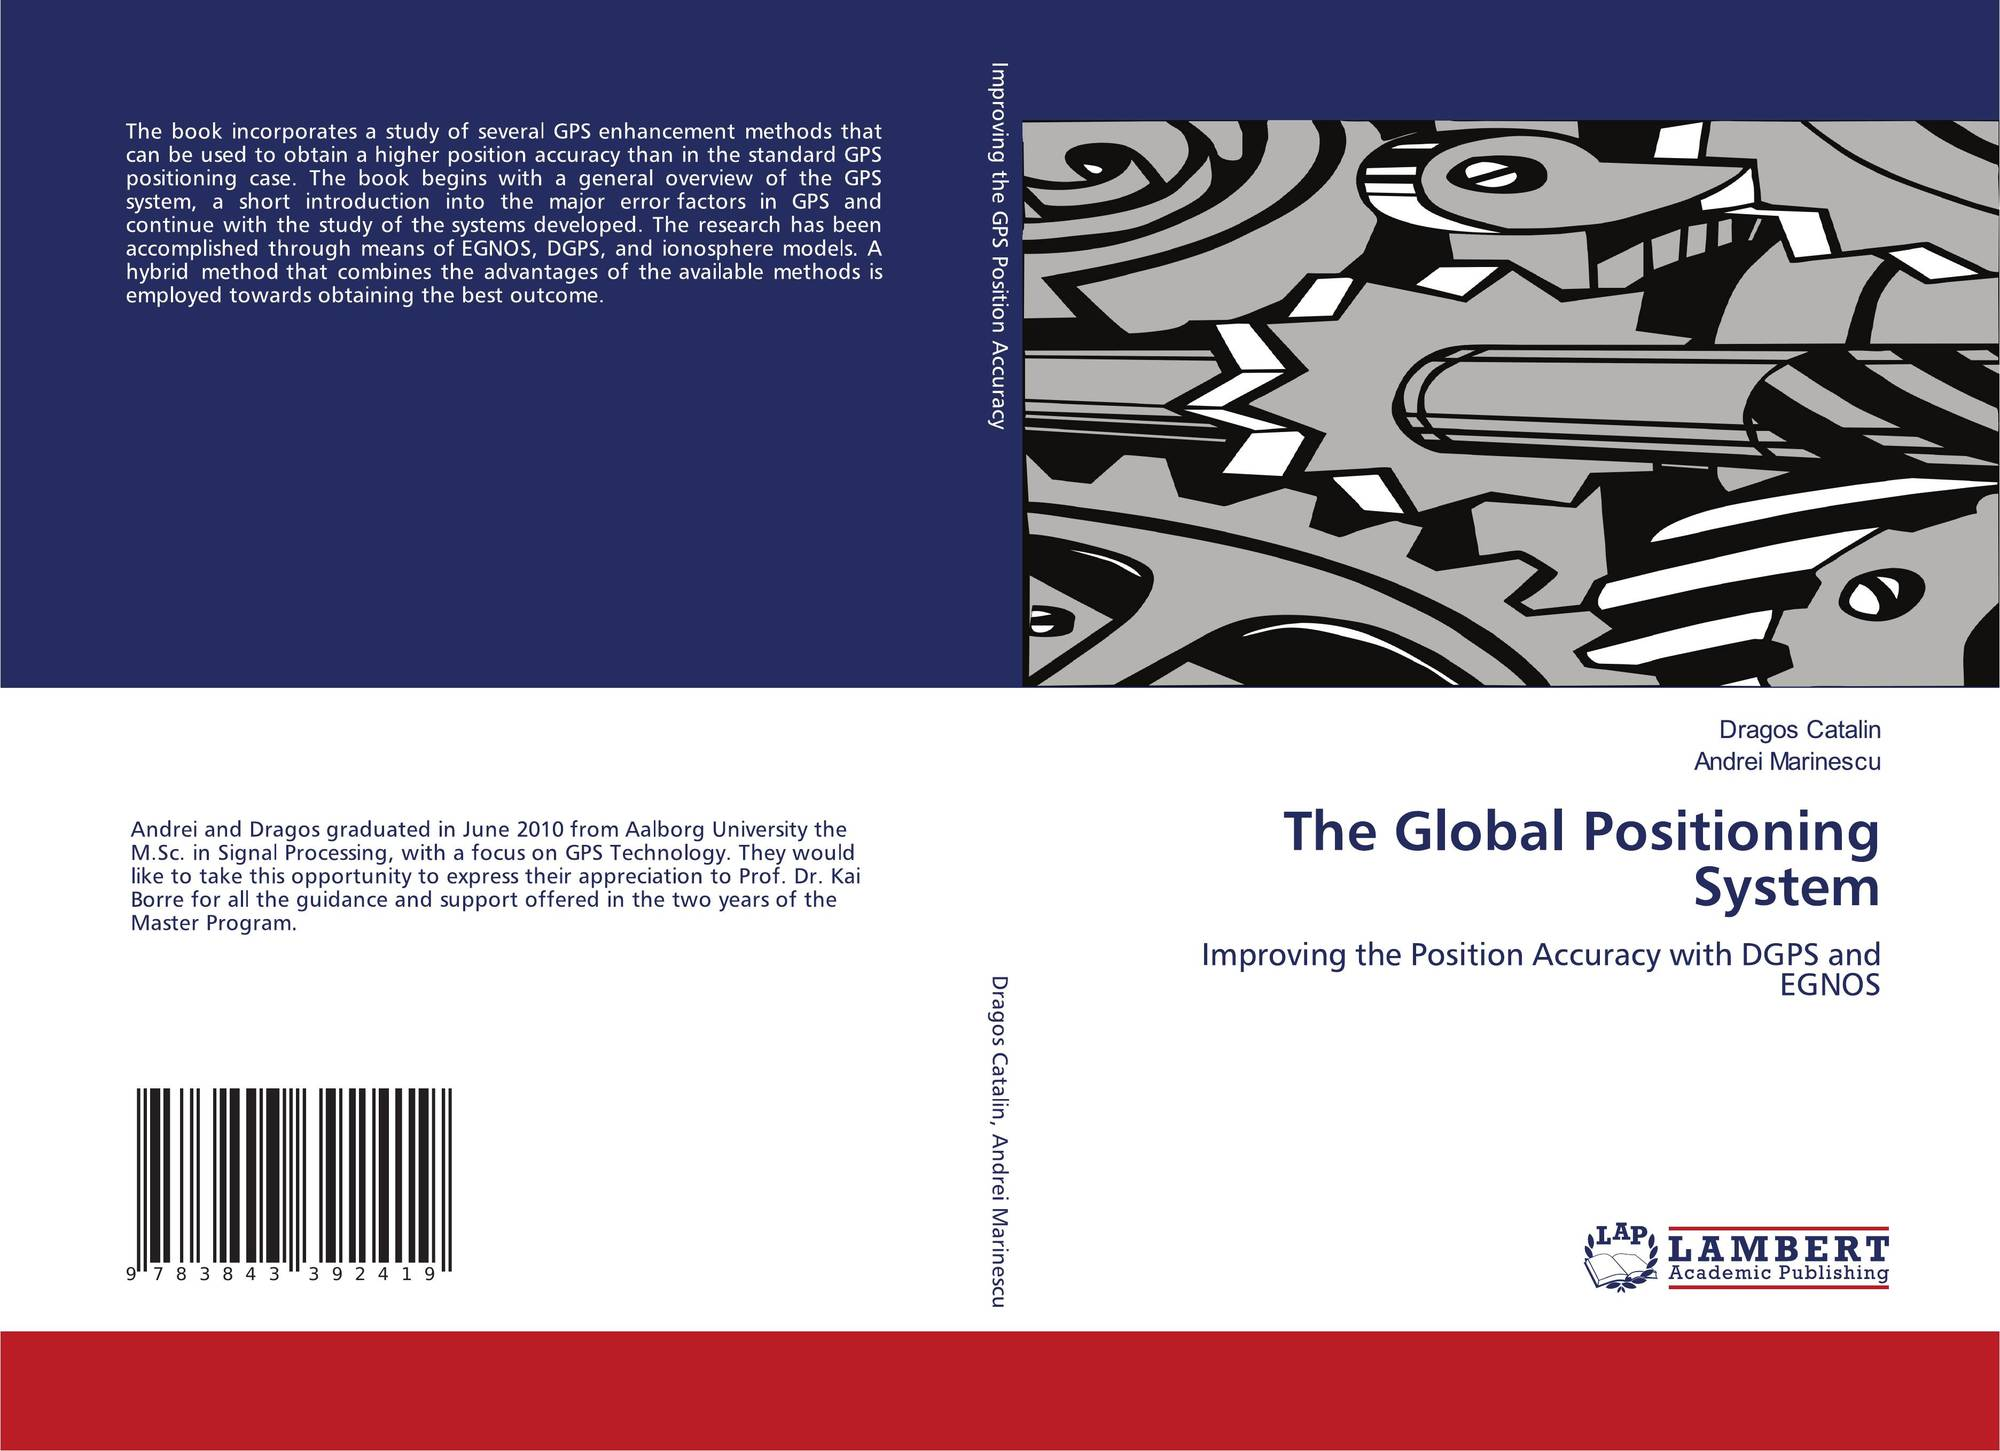 an overview of the global positioning system technology Appendix b gps history, chronology, and budgets this appendix provides an overview of the programmatic and institutional evolution of the global positioning system (gps), including a history of its growing use in the military and civilian world, a chronology of important events in its development, and a summary of its costs to the government.